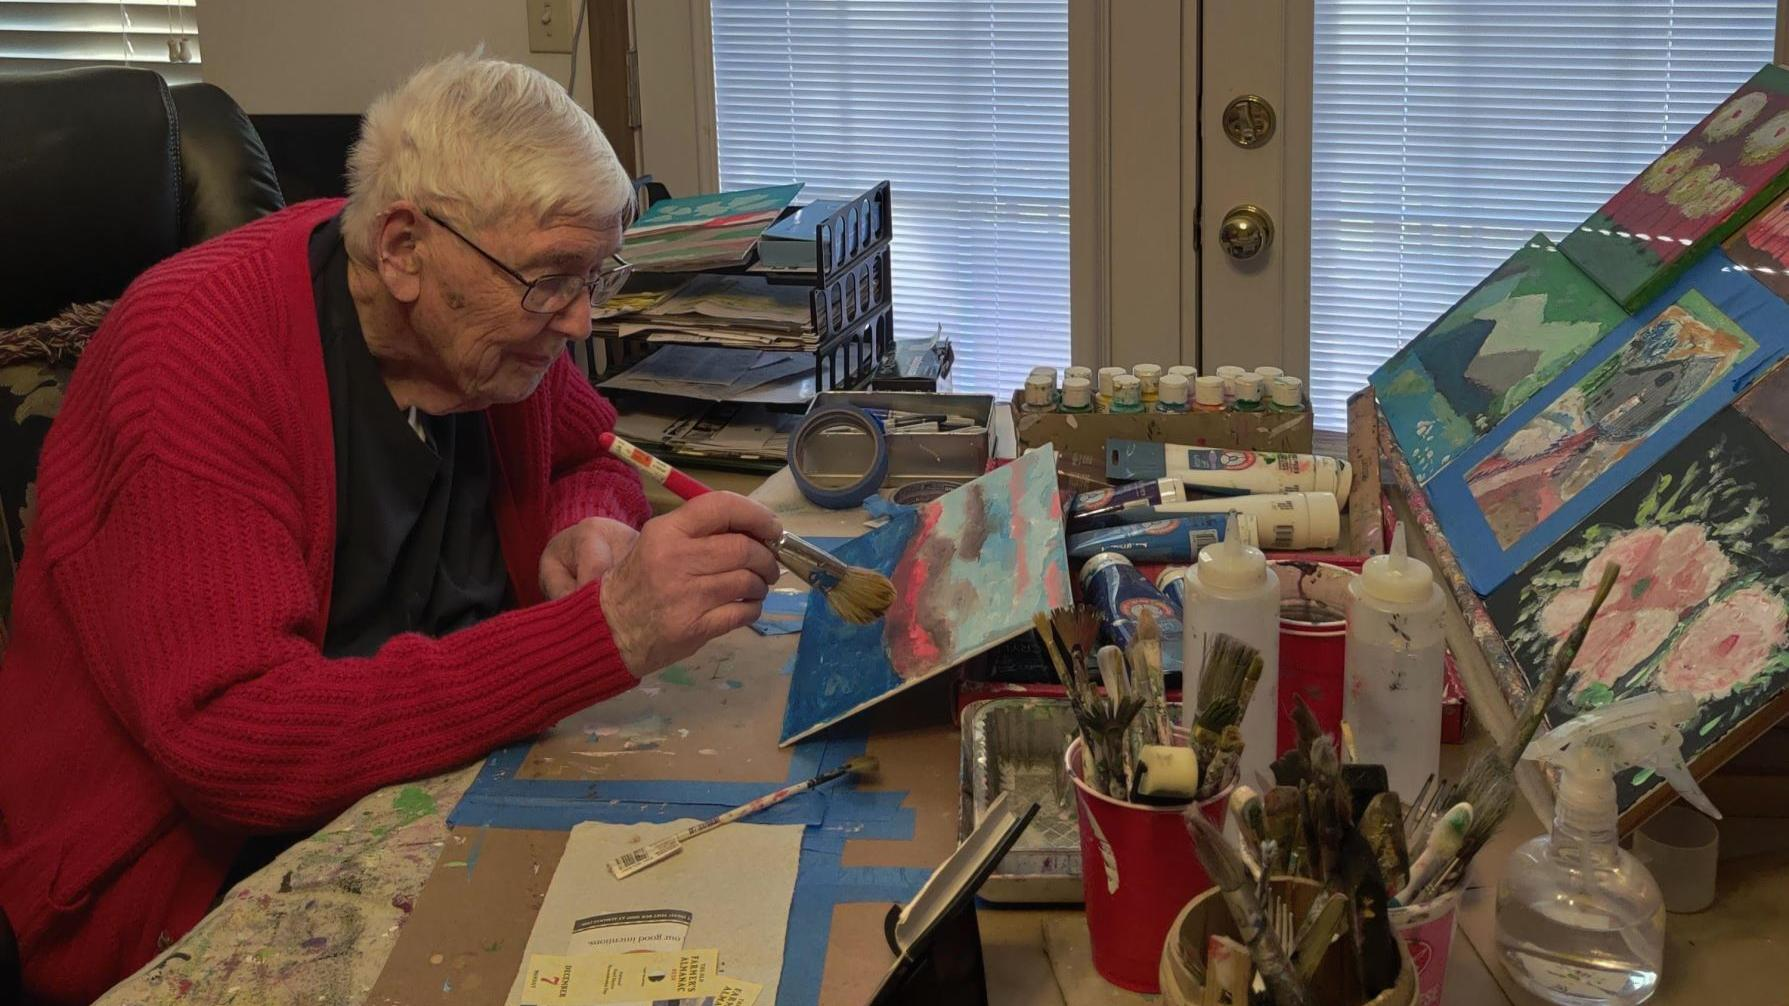 At age 97, he gets his first art show